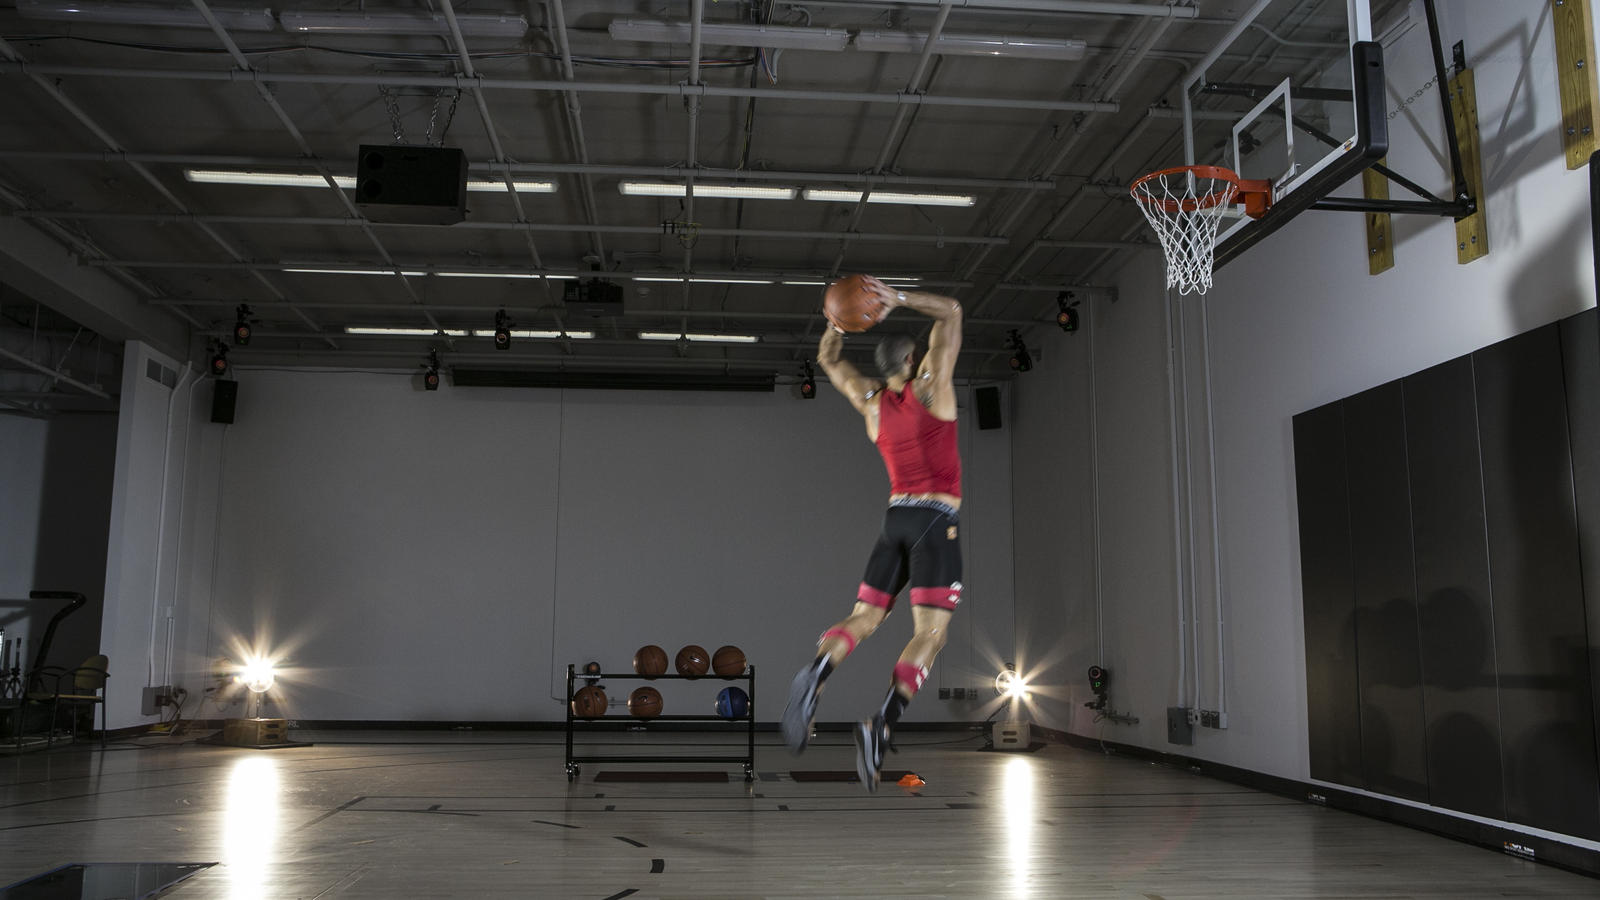 nsrl-basketball-motion-capture